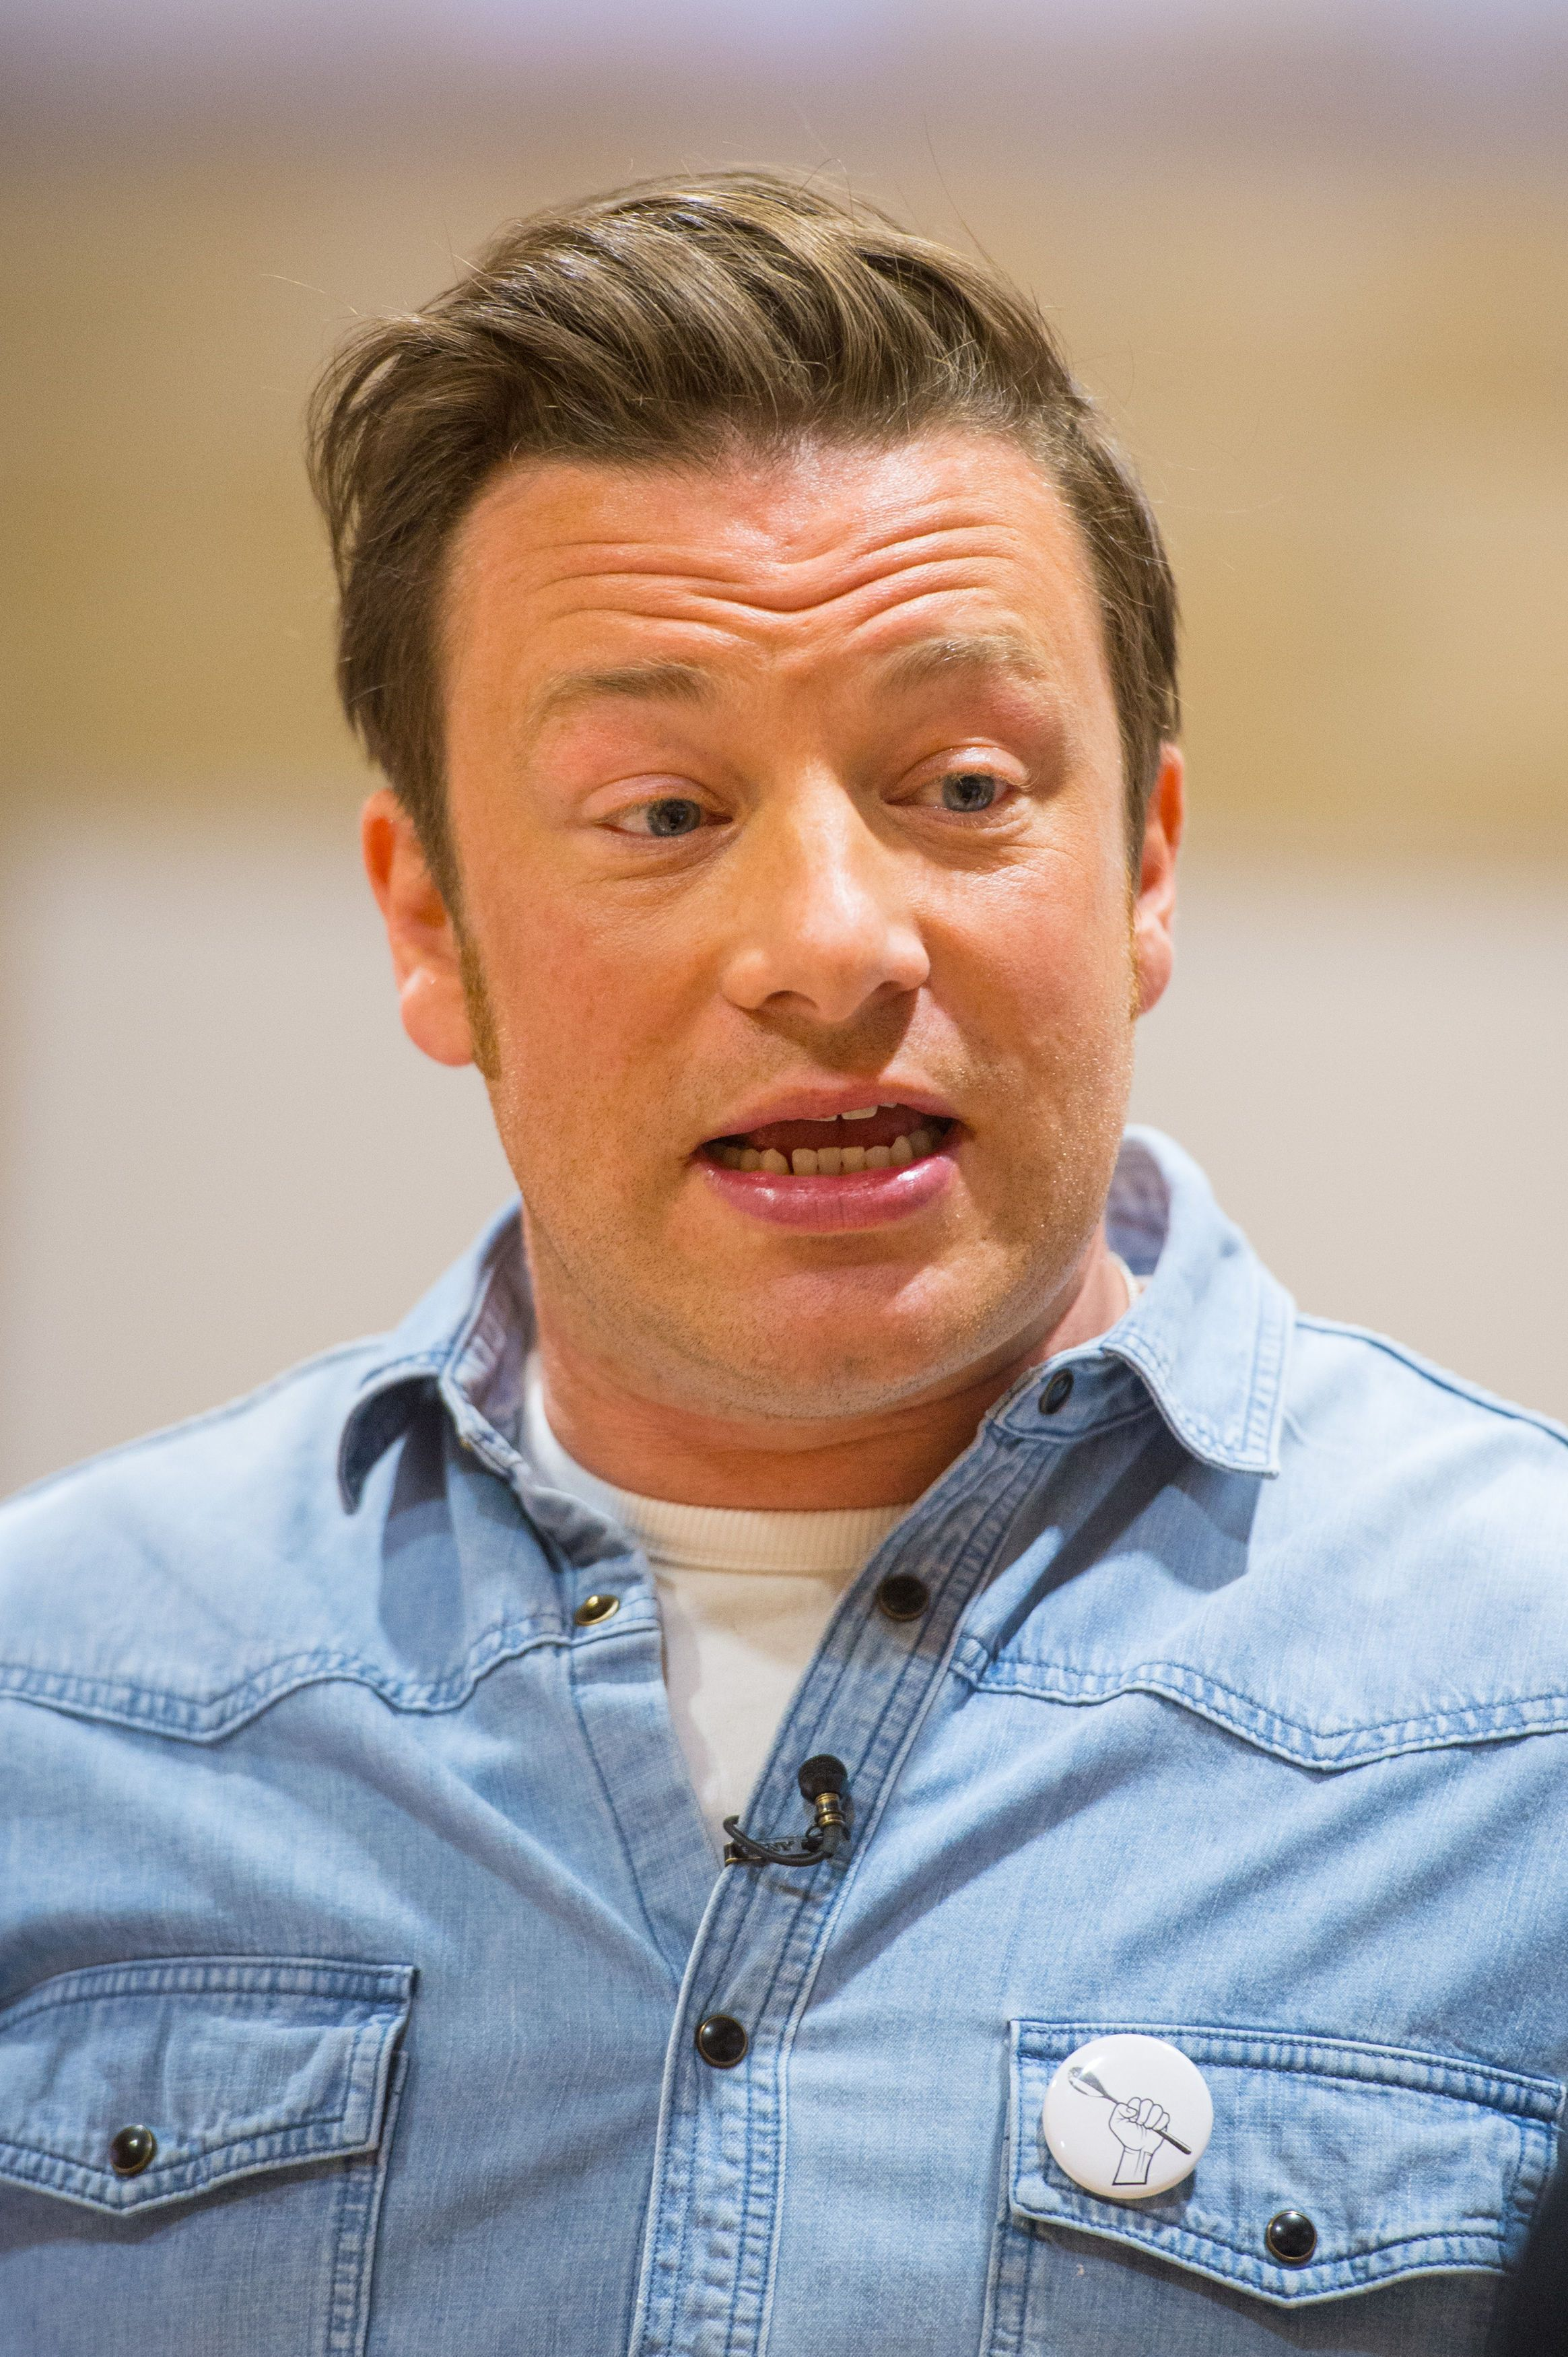 Jamie Oliver Criticises Parents Who Allow Teens To Post 'Porno, Luscious' Selfies On Social